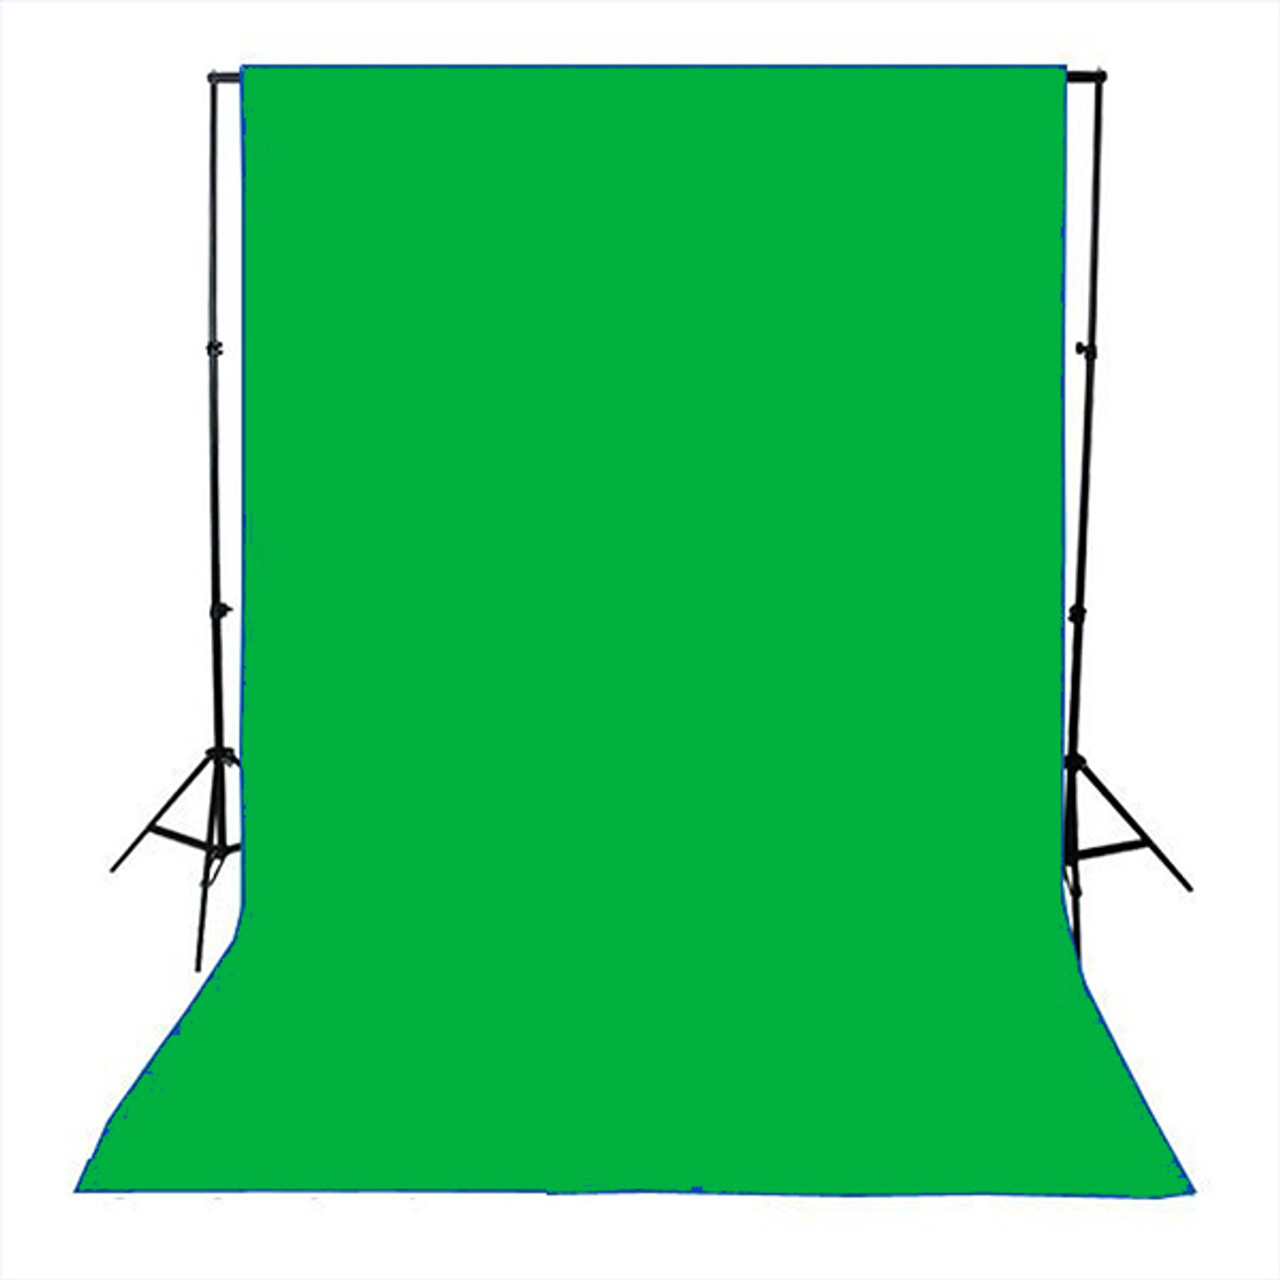 6' x 6' Green Fabric - Chroma Key